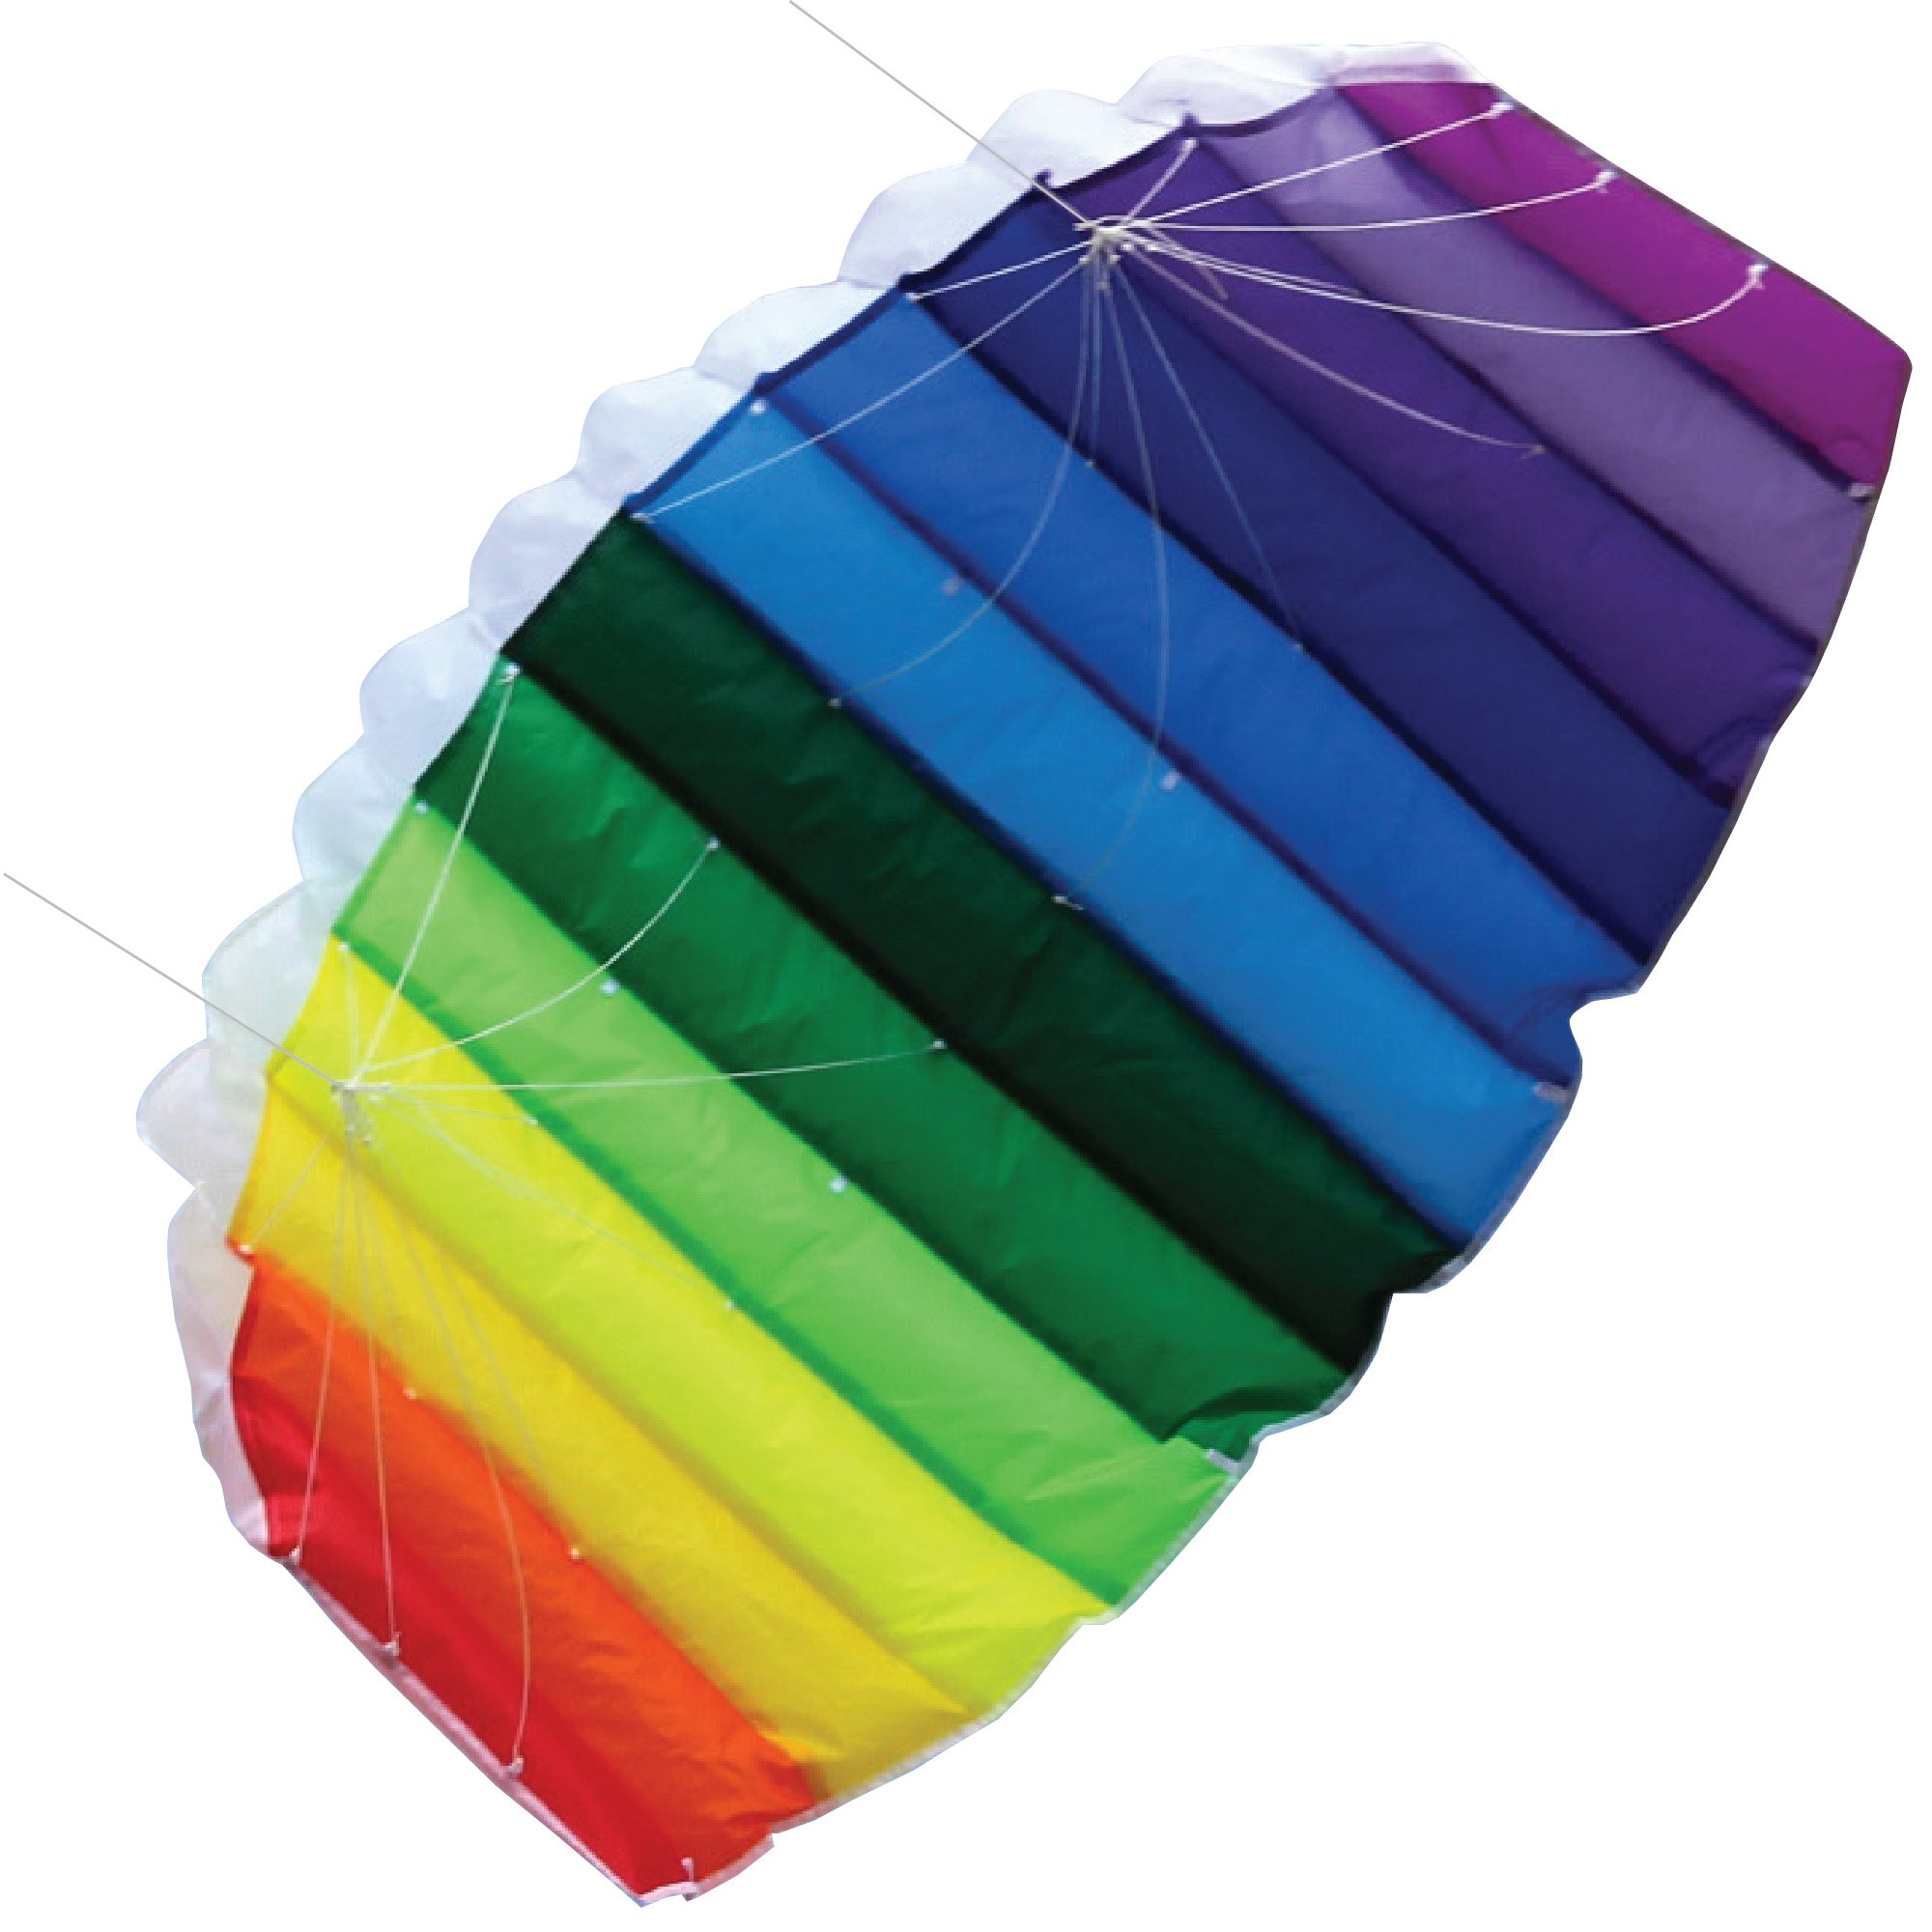 AIRFOIL STUNT SPORT KITE Dual-Line with Strings, Handles, Carry Bag, Winder, FREE Flying Tips eBook, Easy Assembly, Rainbow Color by Moon Glow Sports by Moon Glow Sports